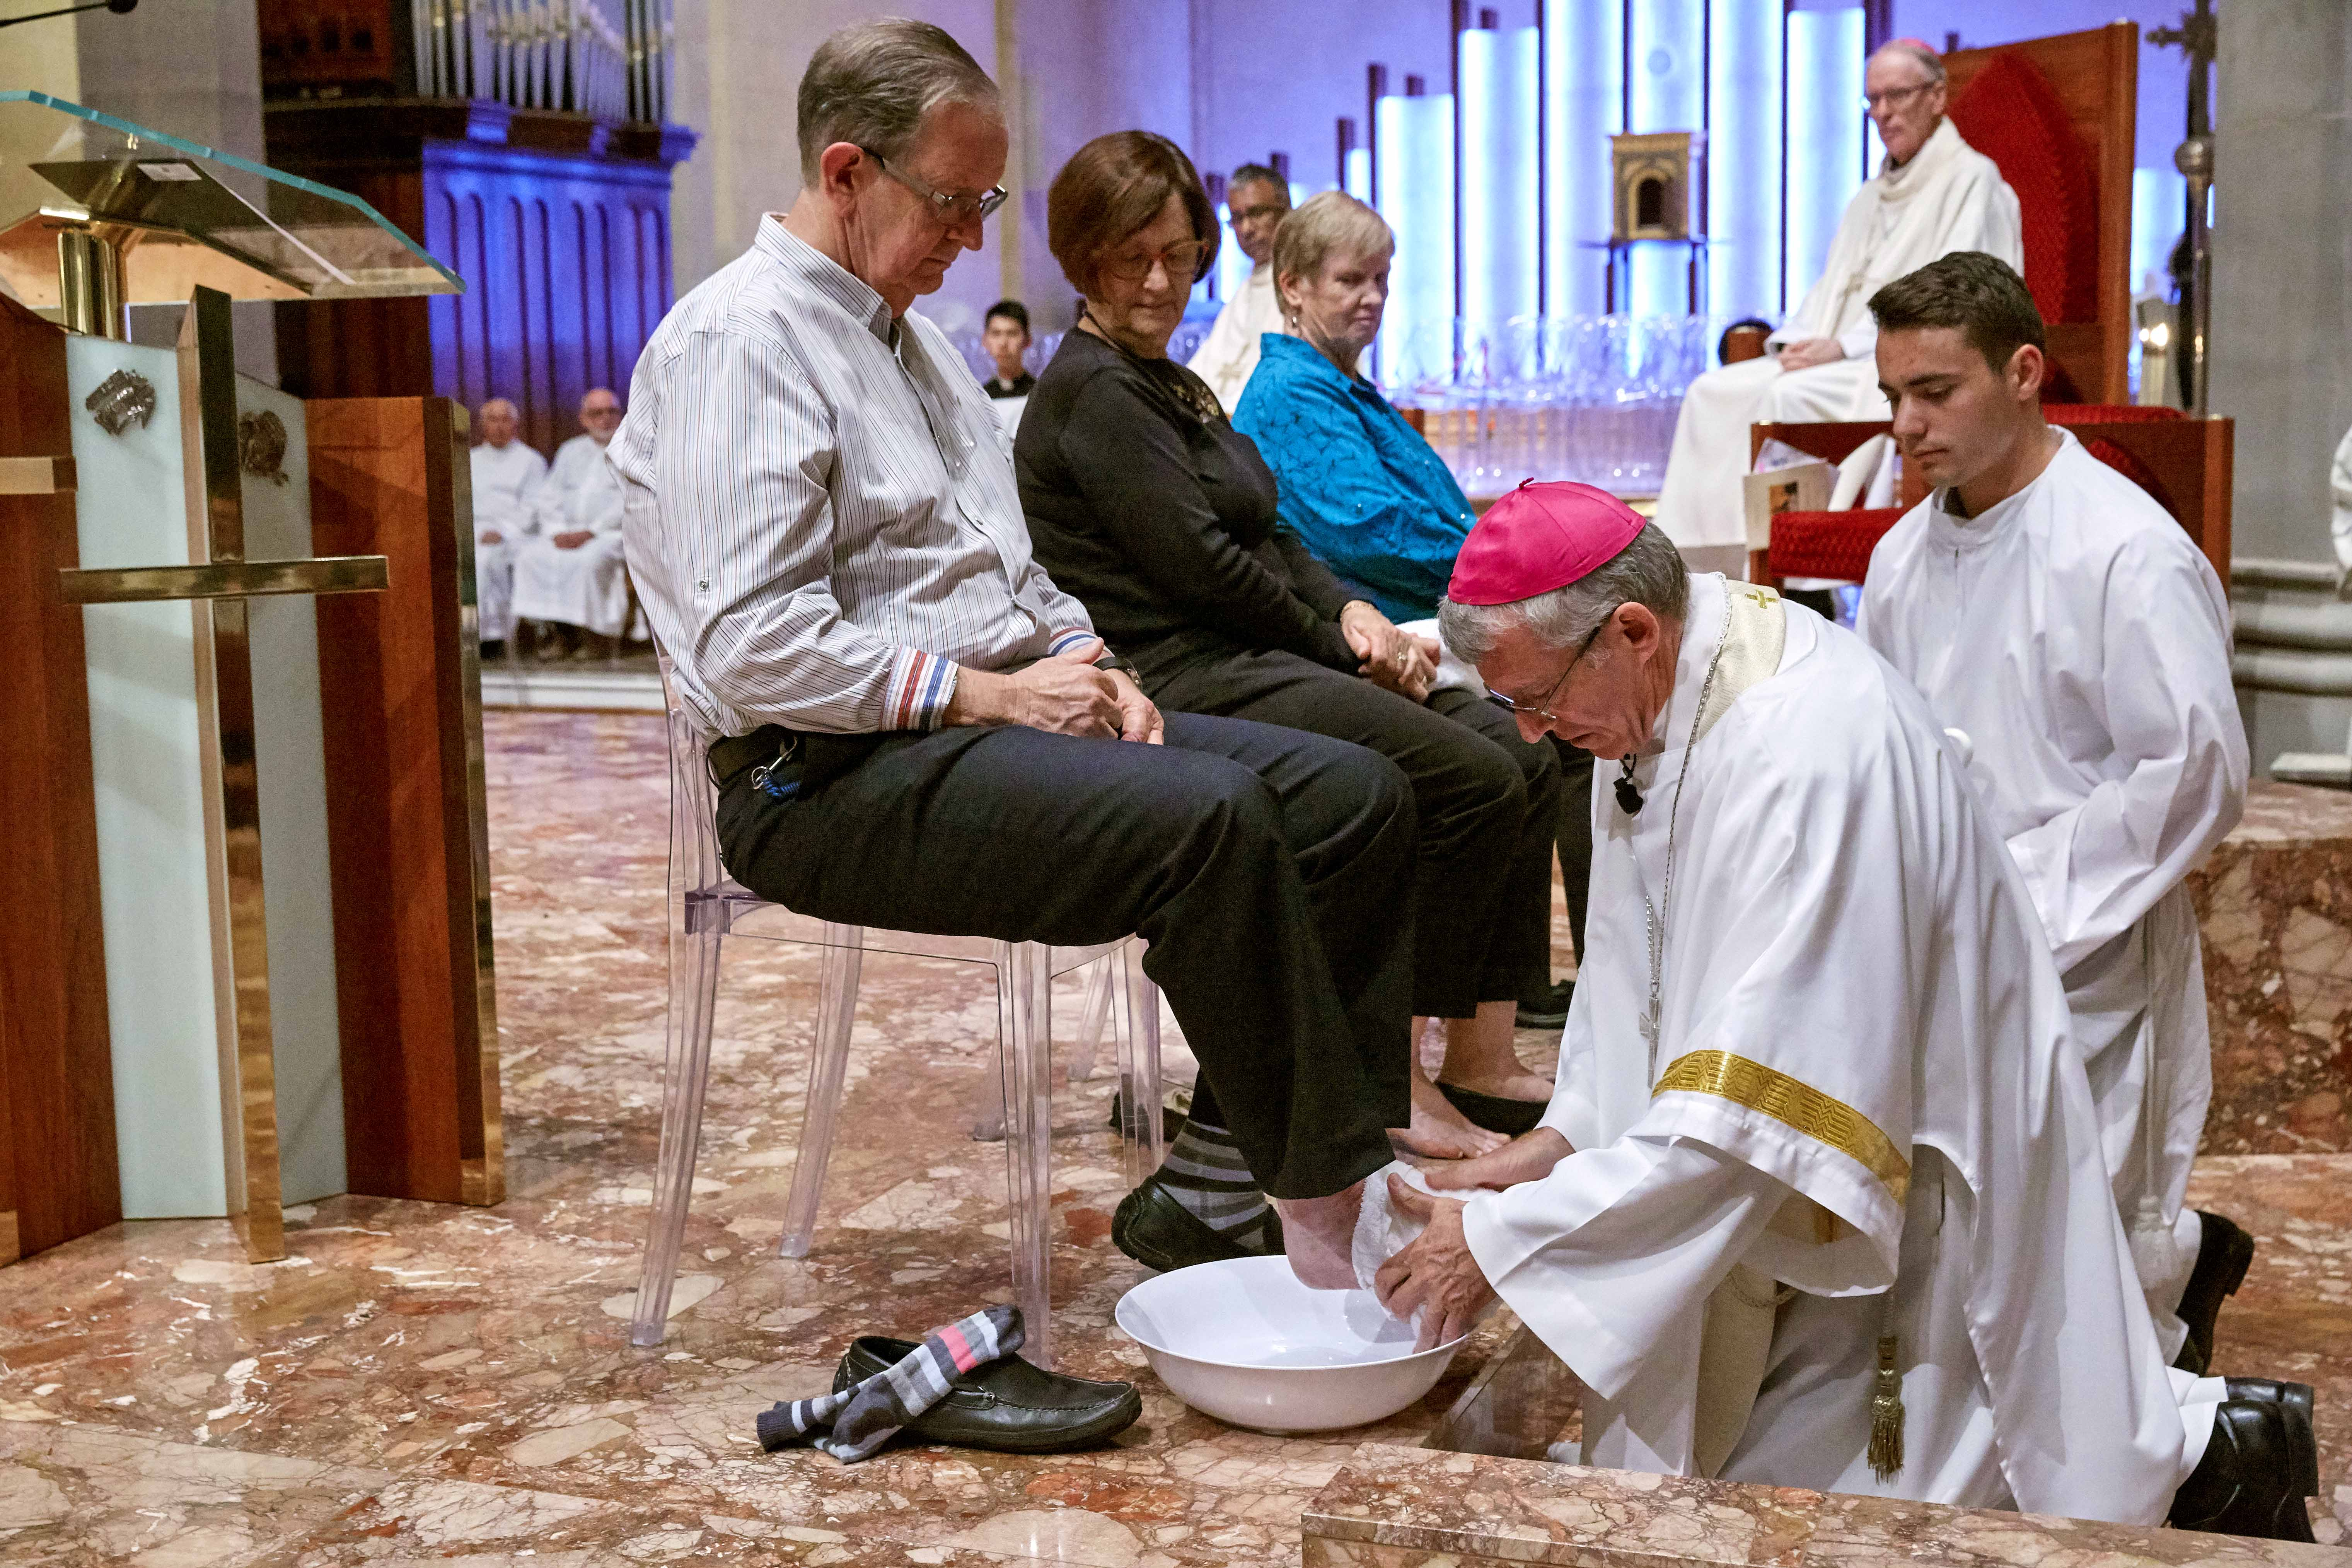 Archbishop Costelloe washes the feet of Cathedral Supervisor Tony Meyrick during the Mass for Holy Thursday at St Mary's Cathedral on Thursday 19 April. Photo: Ron Tan.